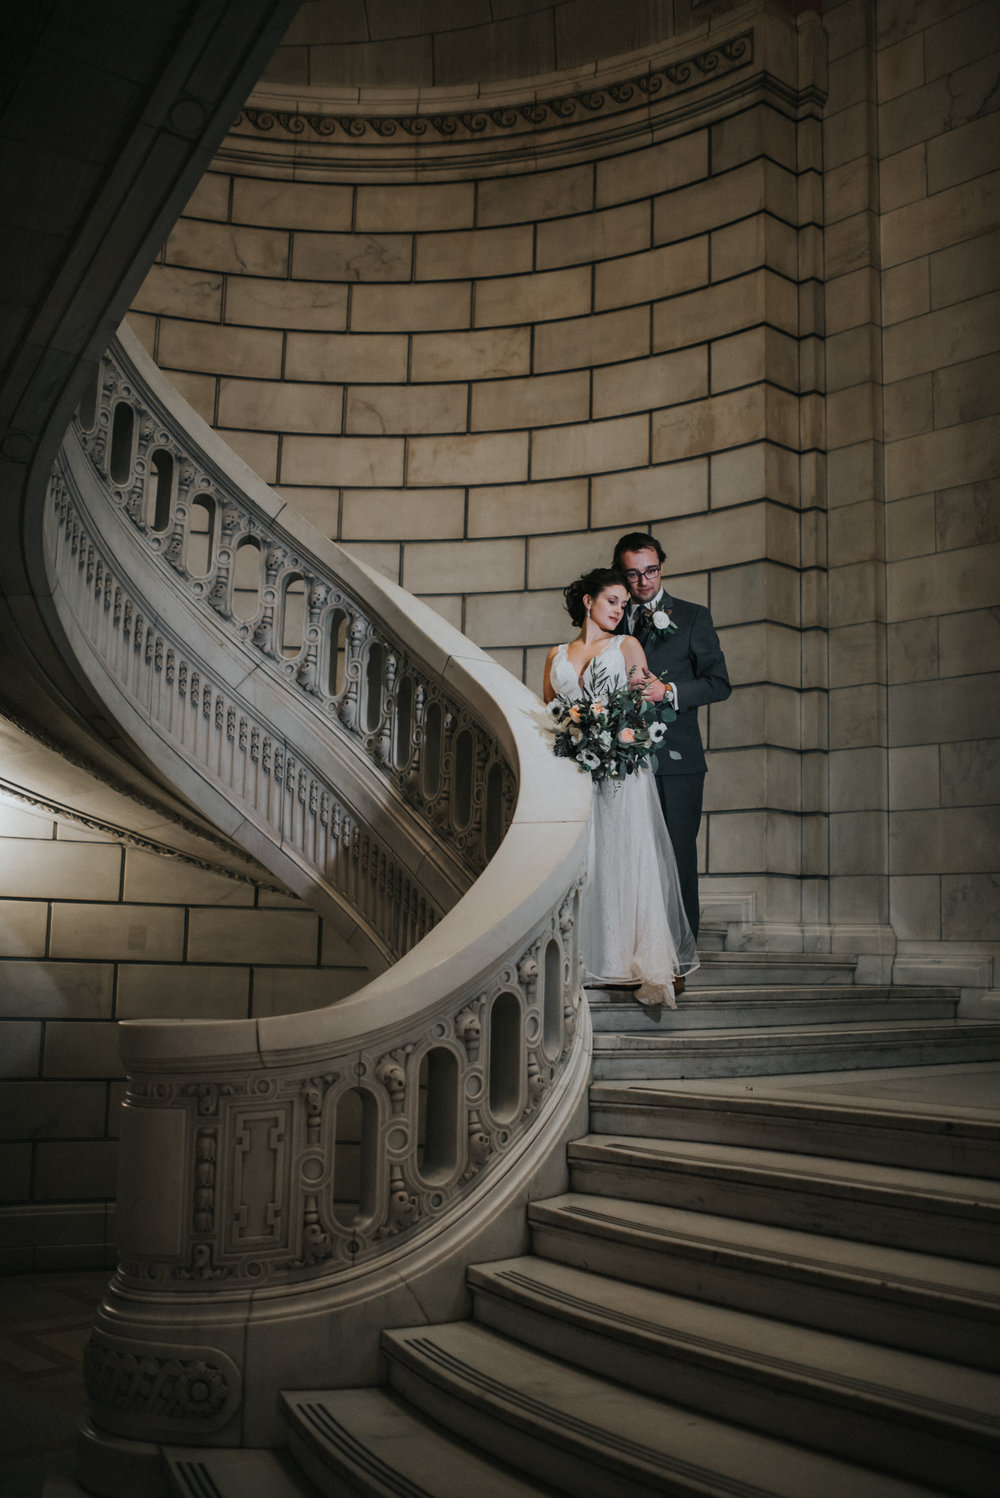 WEDDING AT THE OLD COURTHOUSE IN CLEVELAND OH | GINA + RYAN